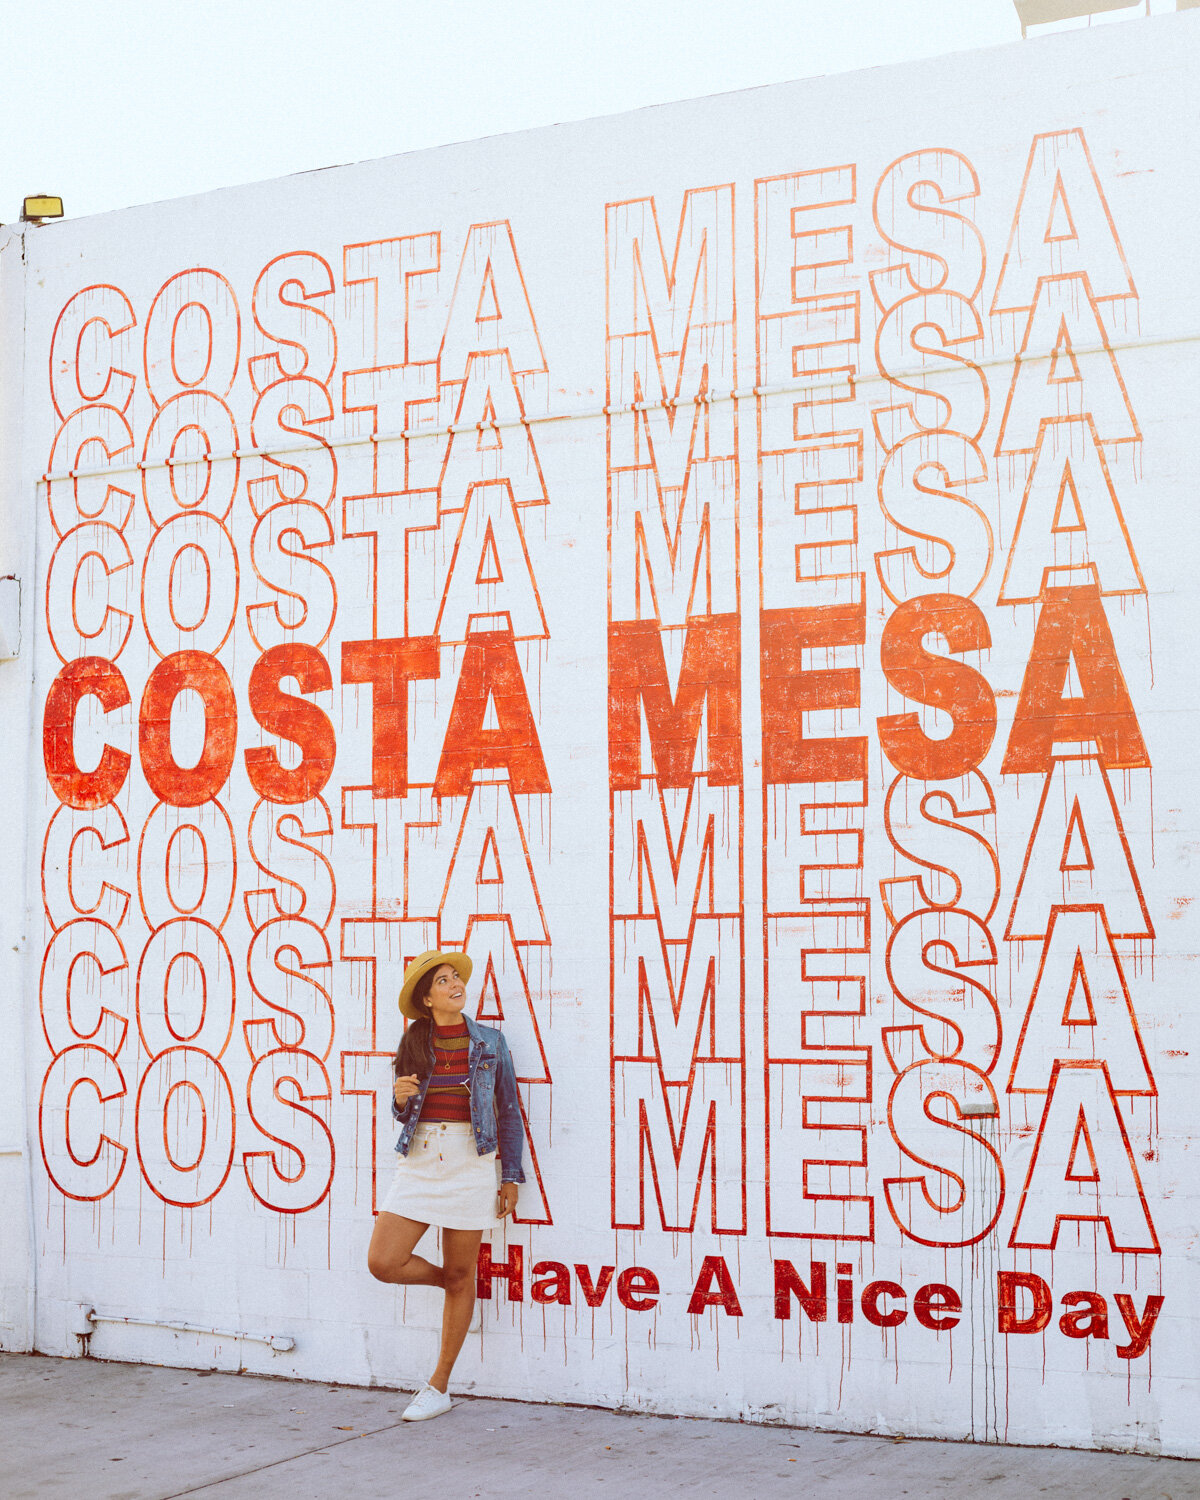 Rachel Off Duty: A Woman Standing and Leaning against the Costa Mesa Have a Nice Day Mural